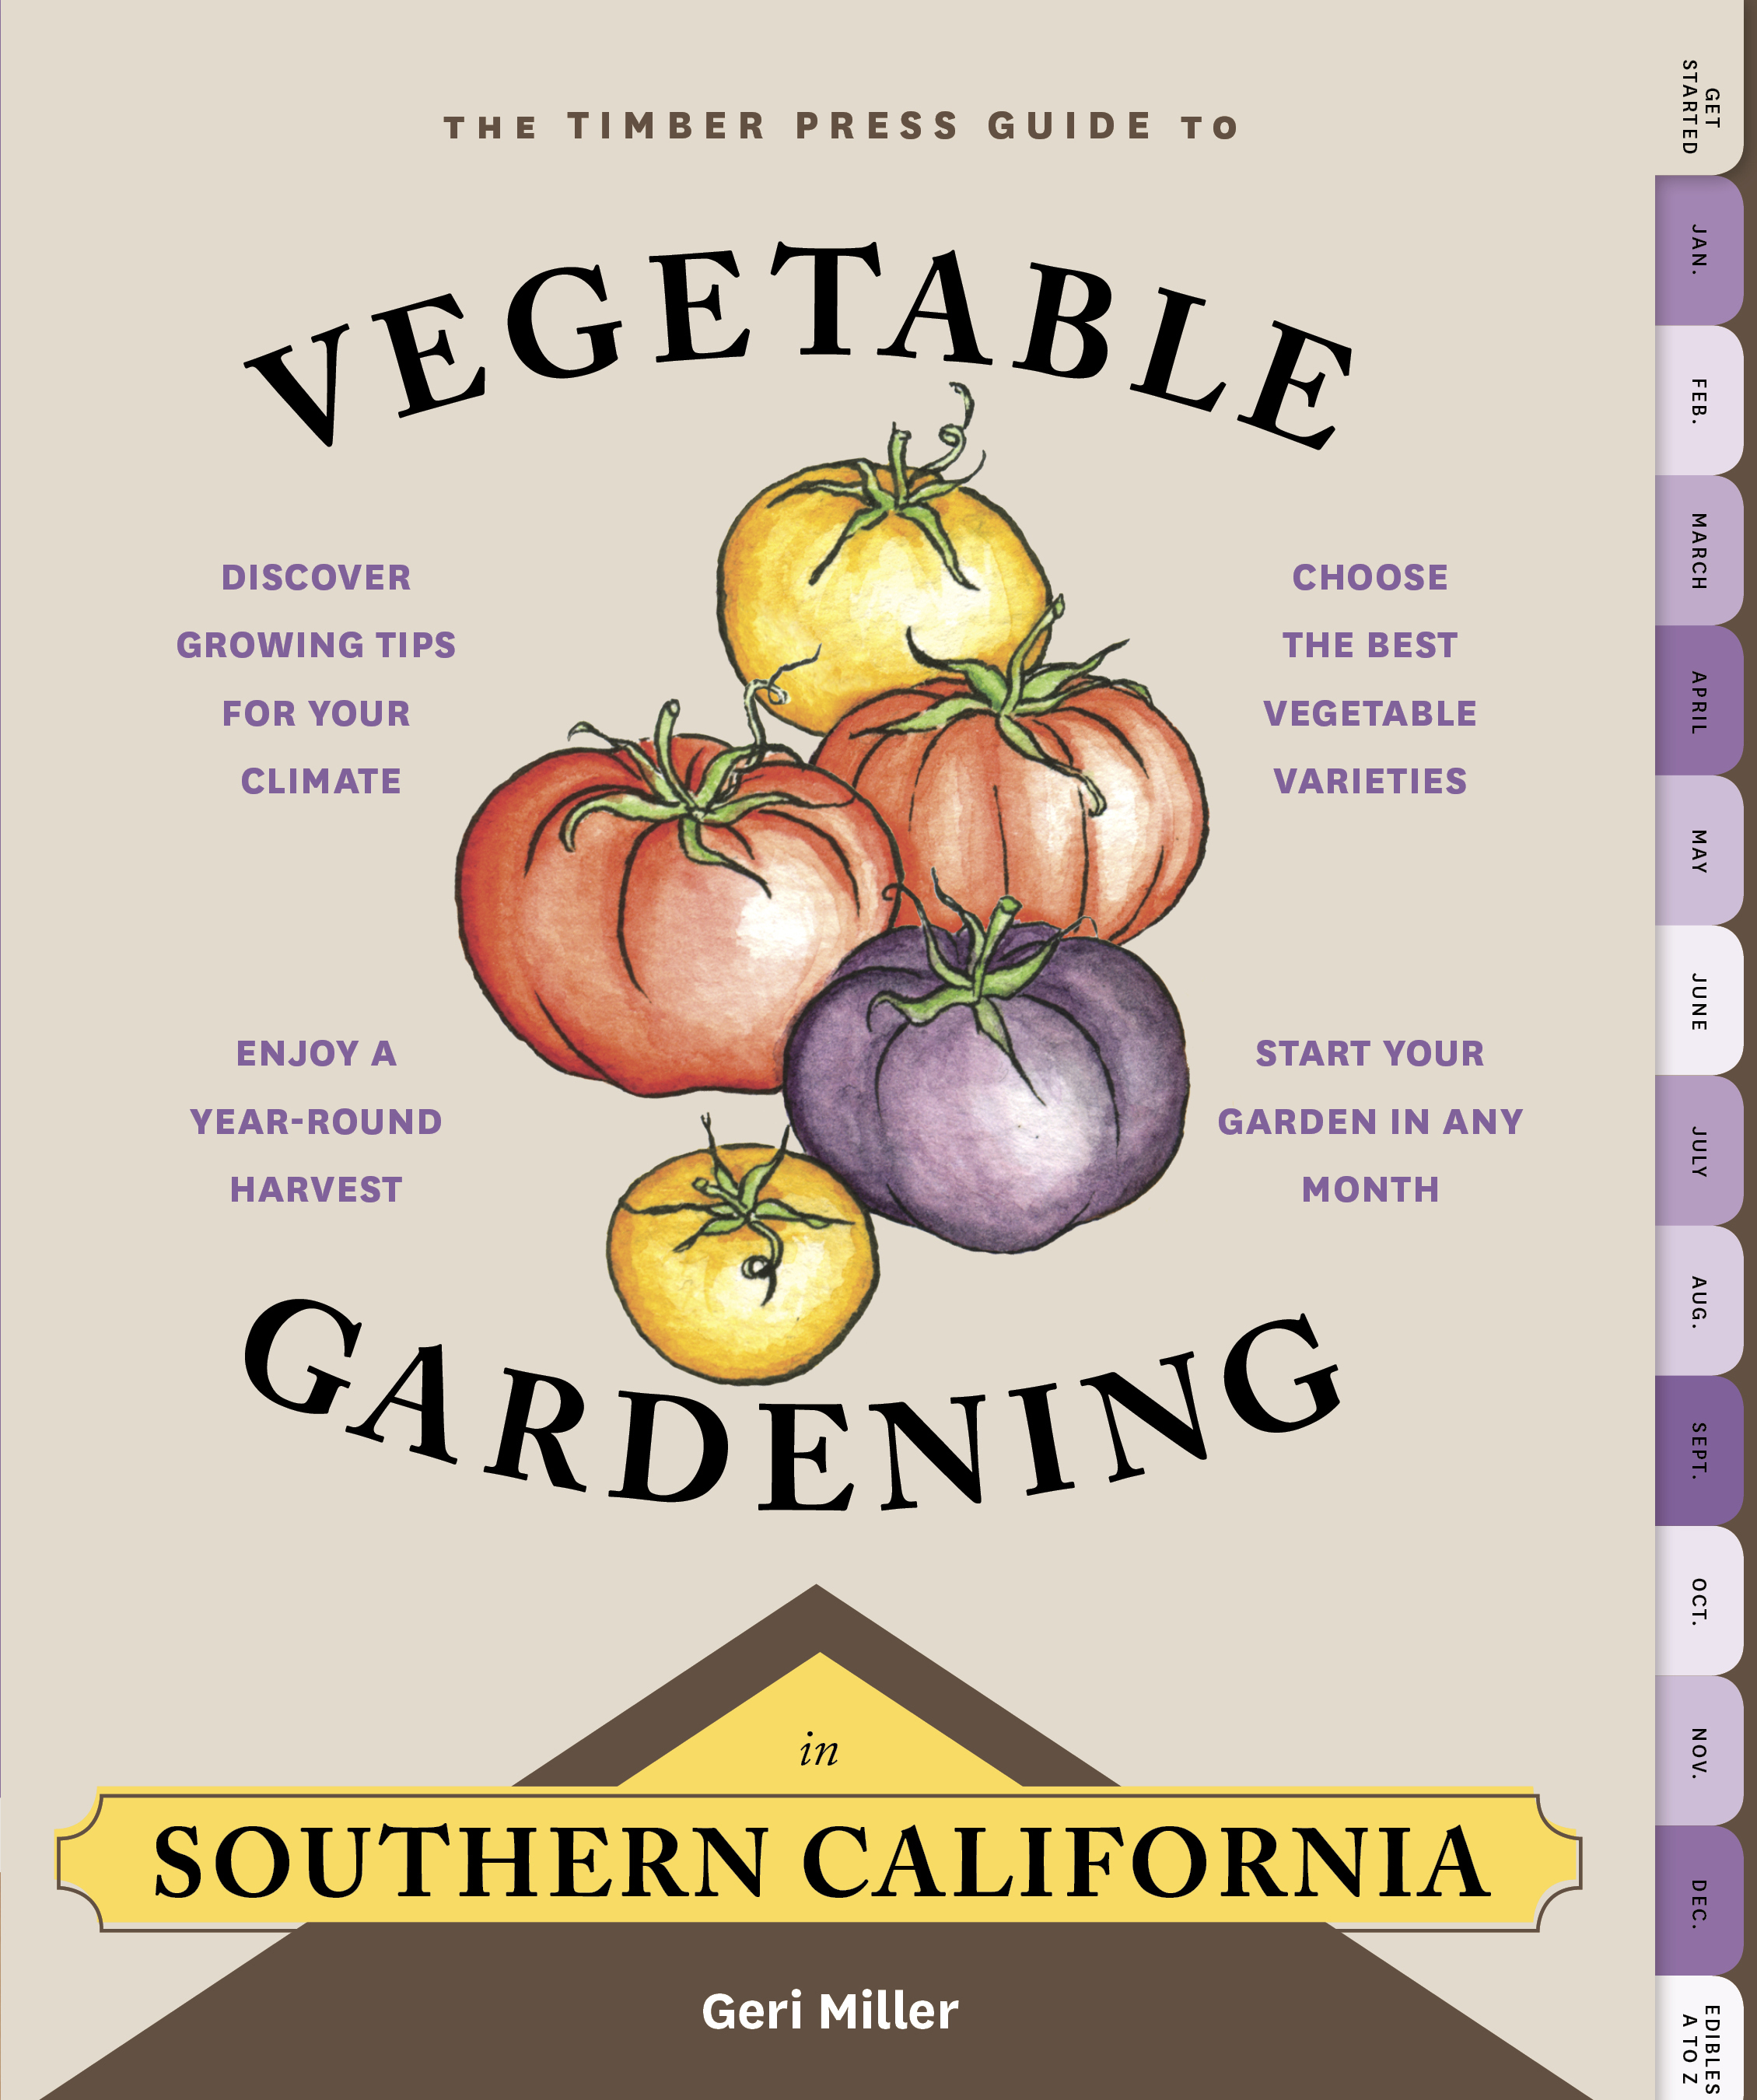 Geri's book on veggie gardening in SoCal (published by Timber Press) will be out December 2015.